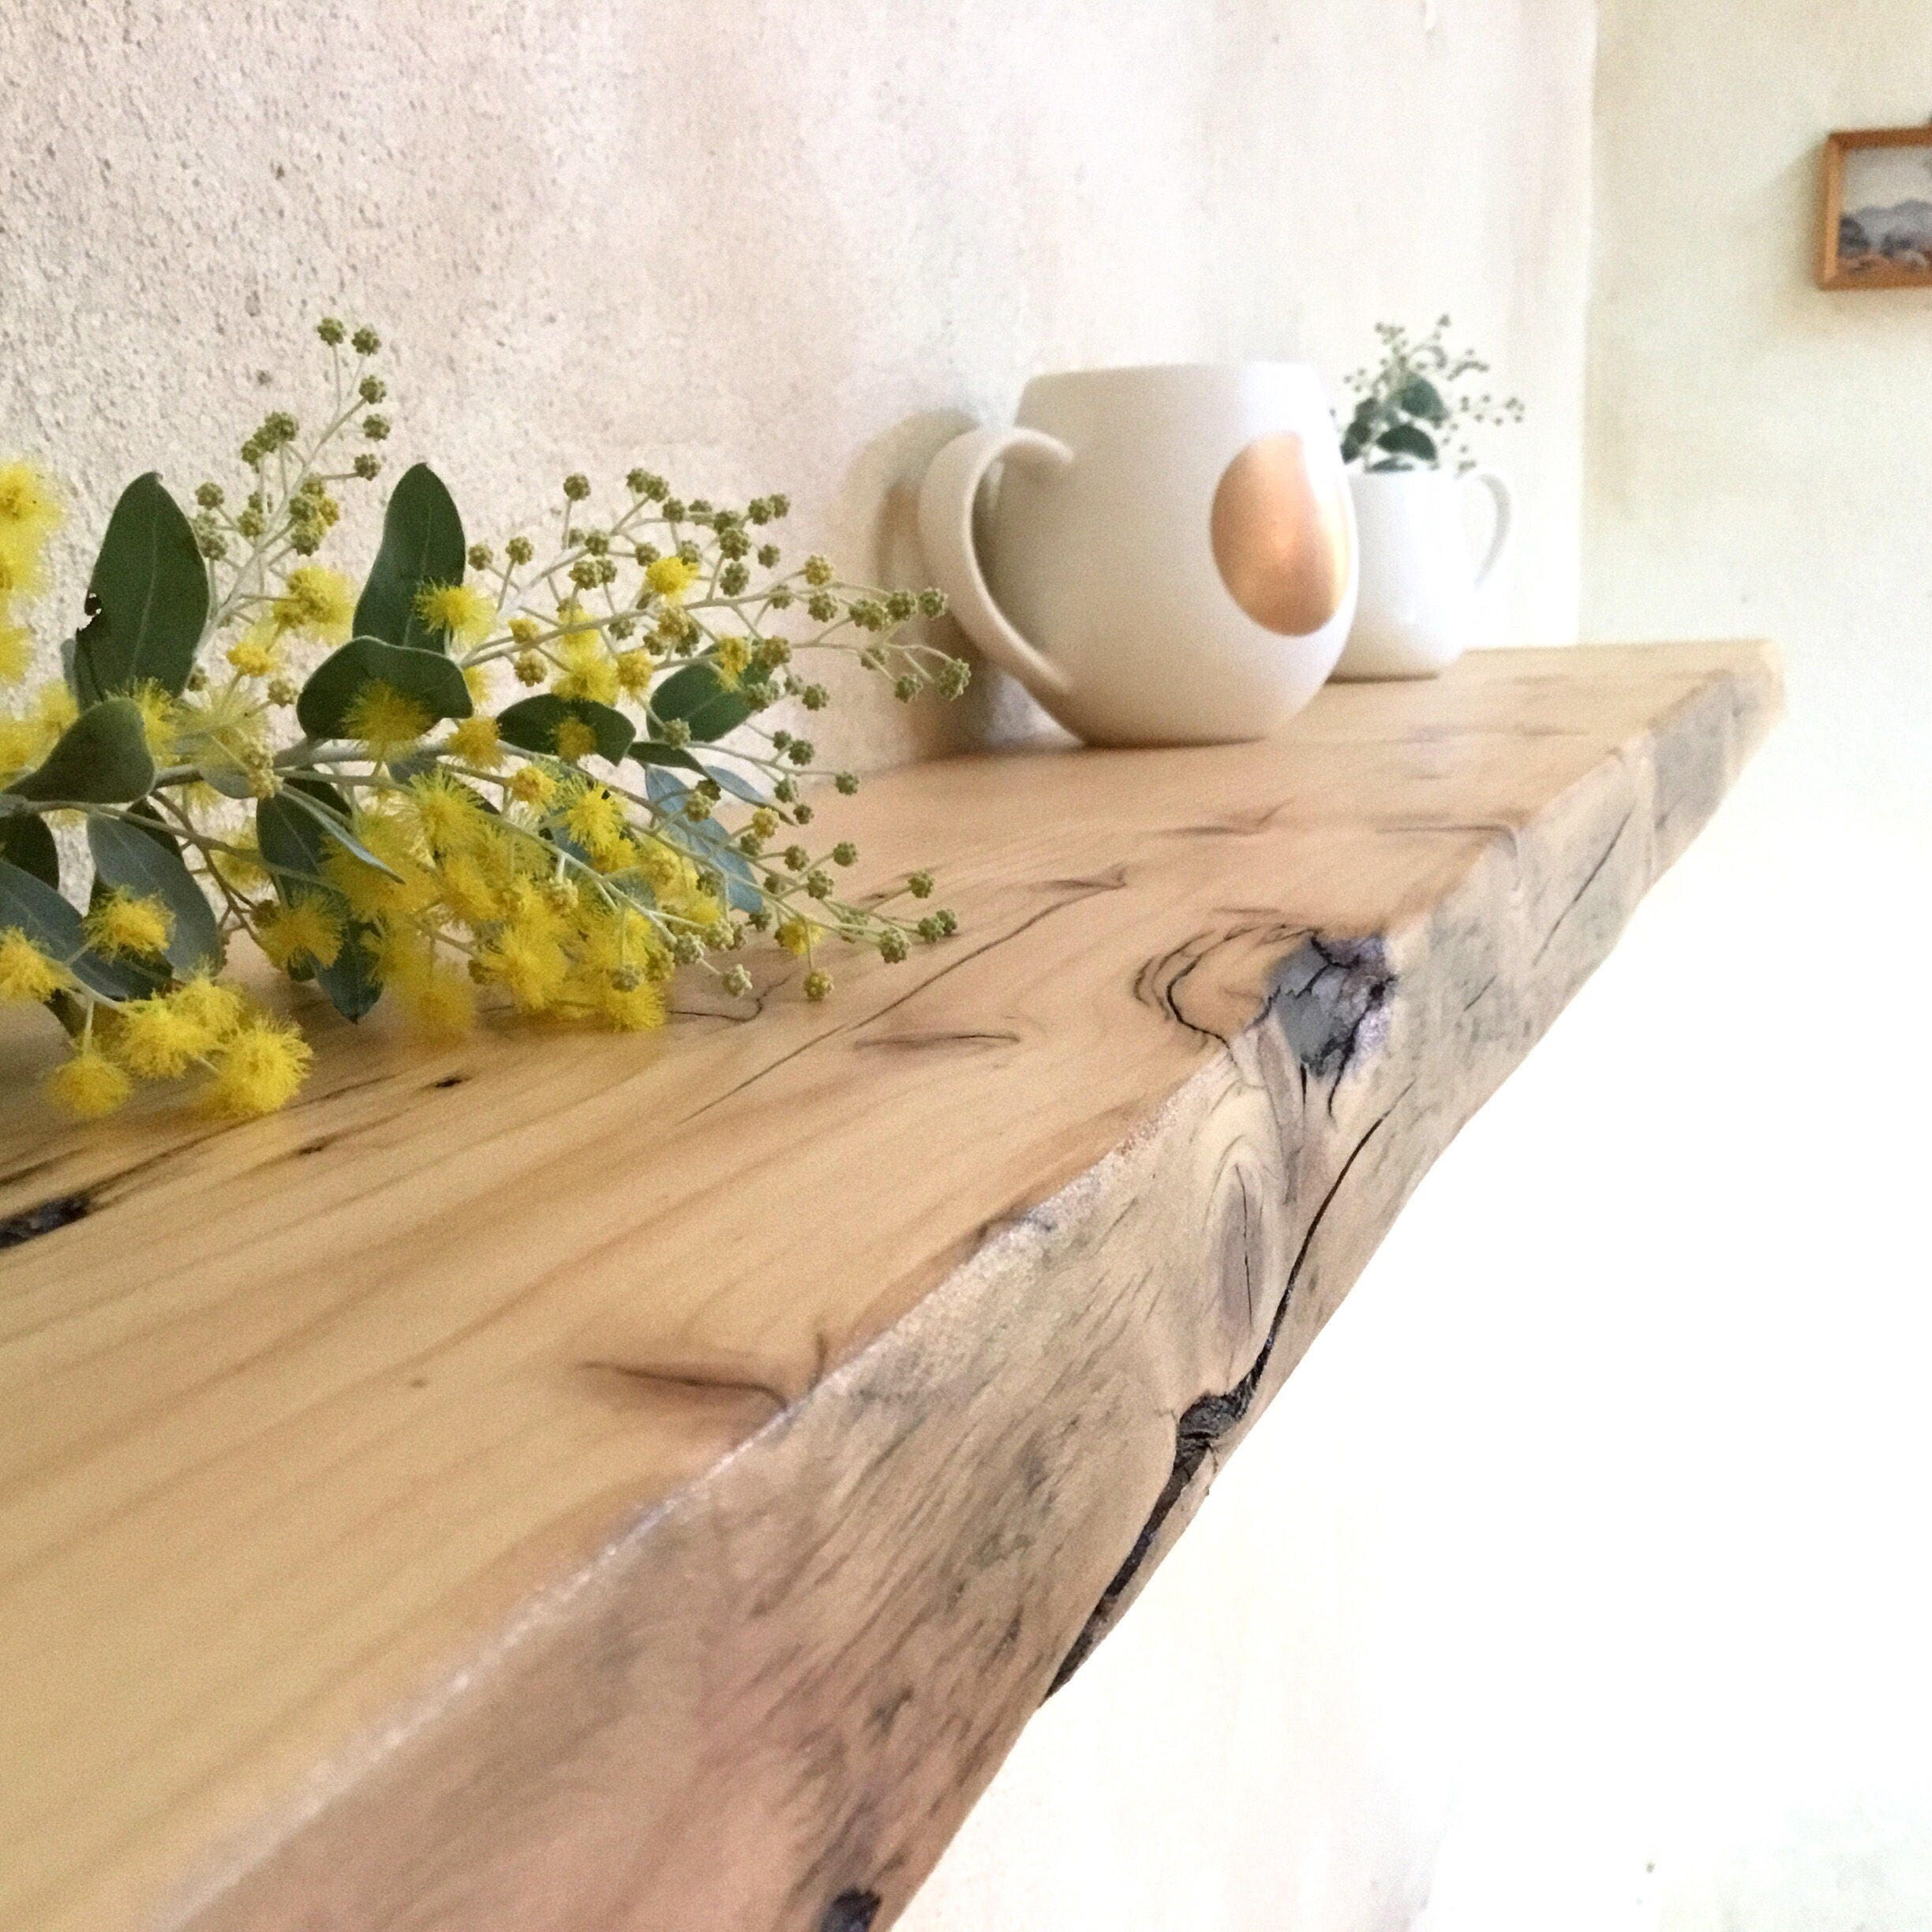 Timber Kitchen Shelves: Floating Wood Shelves Recycled Timber Reclaimed Kitchen